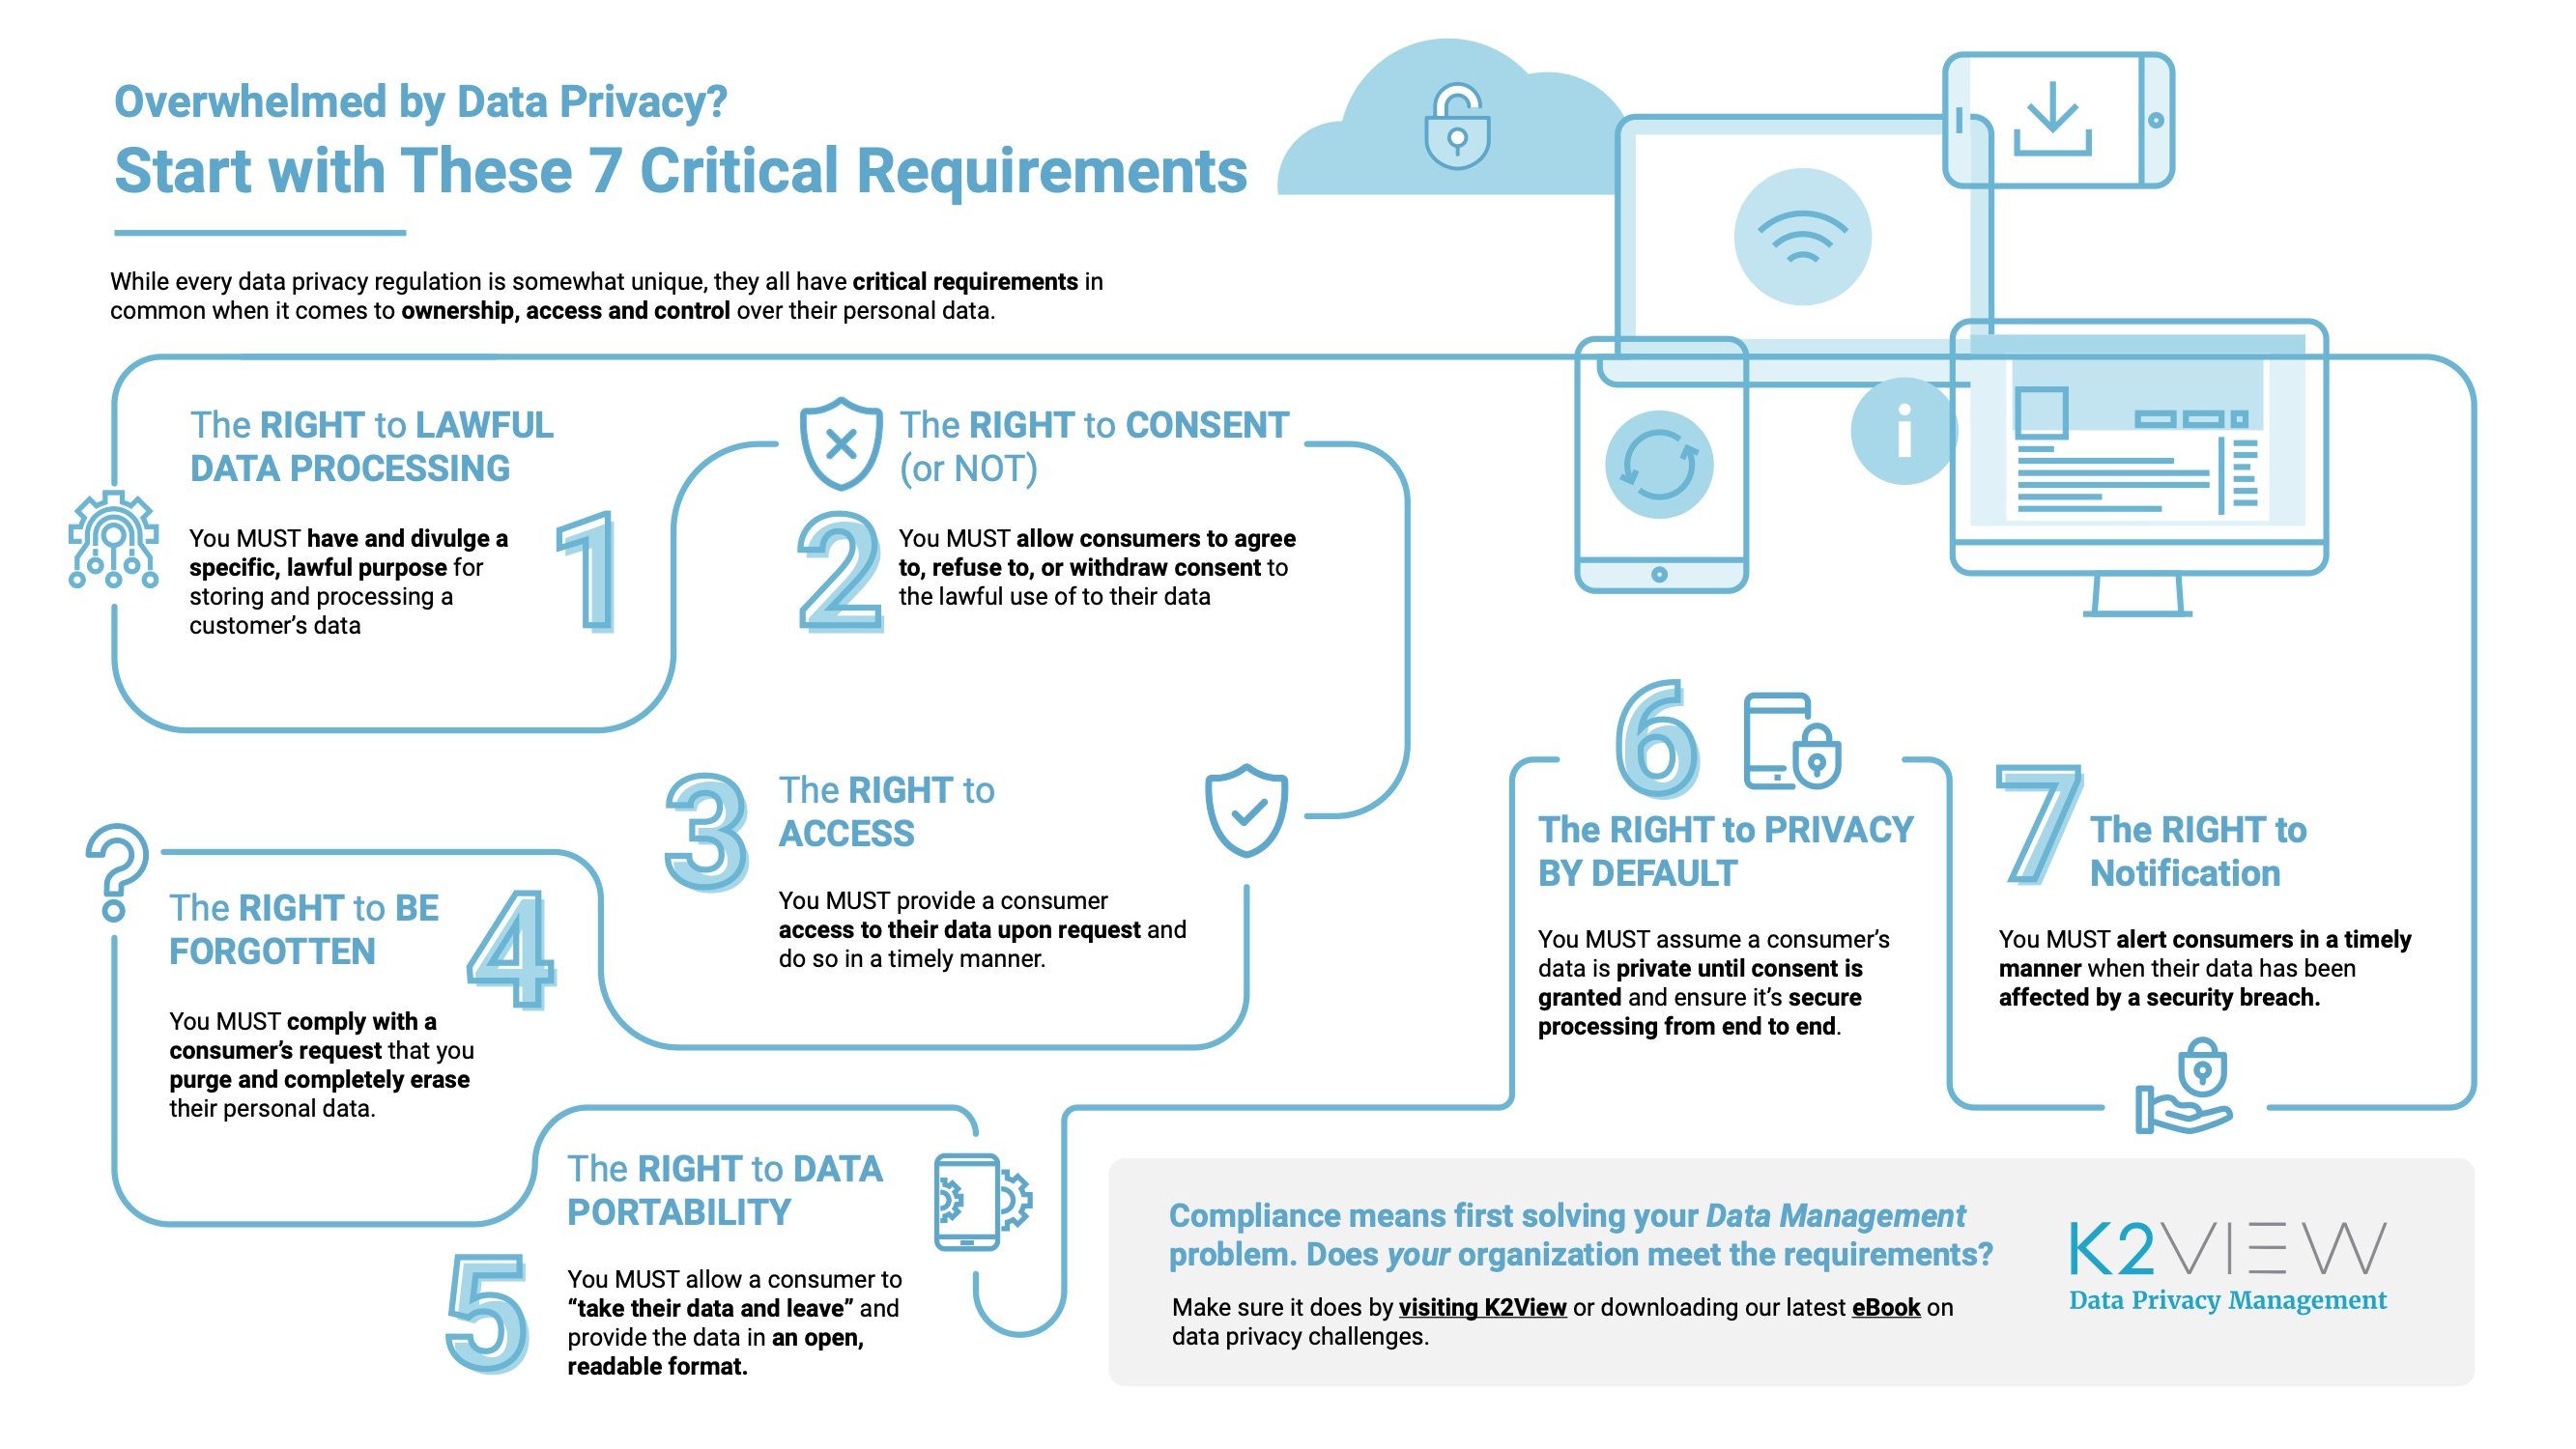 Overwhelmed by Enterprise Data Privacy Management? Start with These 7 Critical Requirements